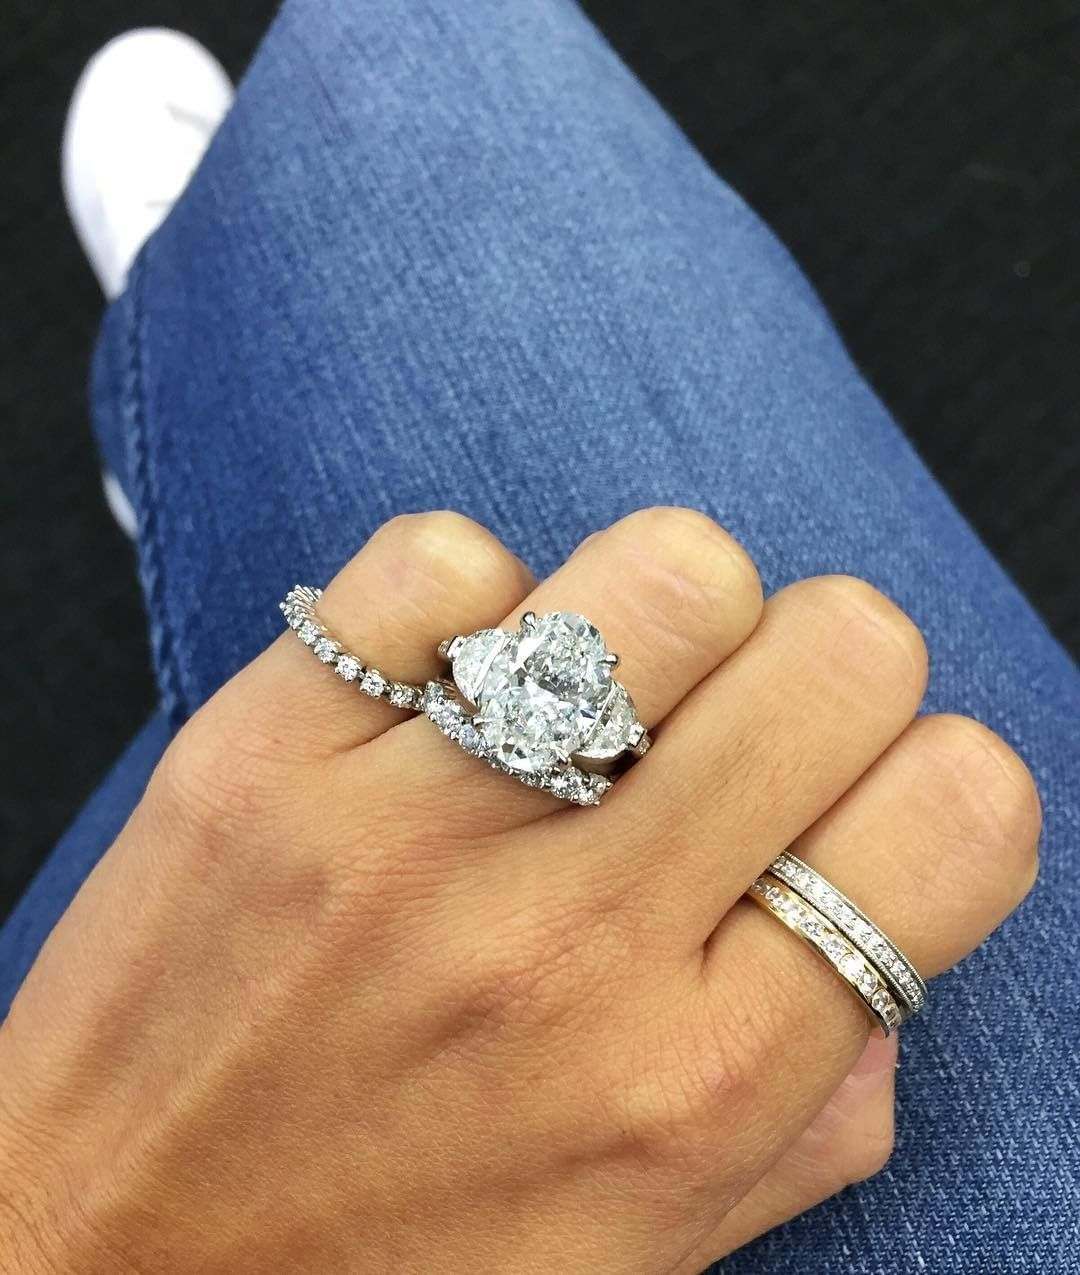 We Love Gorgeous Engagement Rings Of All Shapes And Sizes But Giant Rocks Make For Some Epi Aquamarine Engagement Ring Wedding Ring Designs Cool Wedding Rings